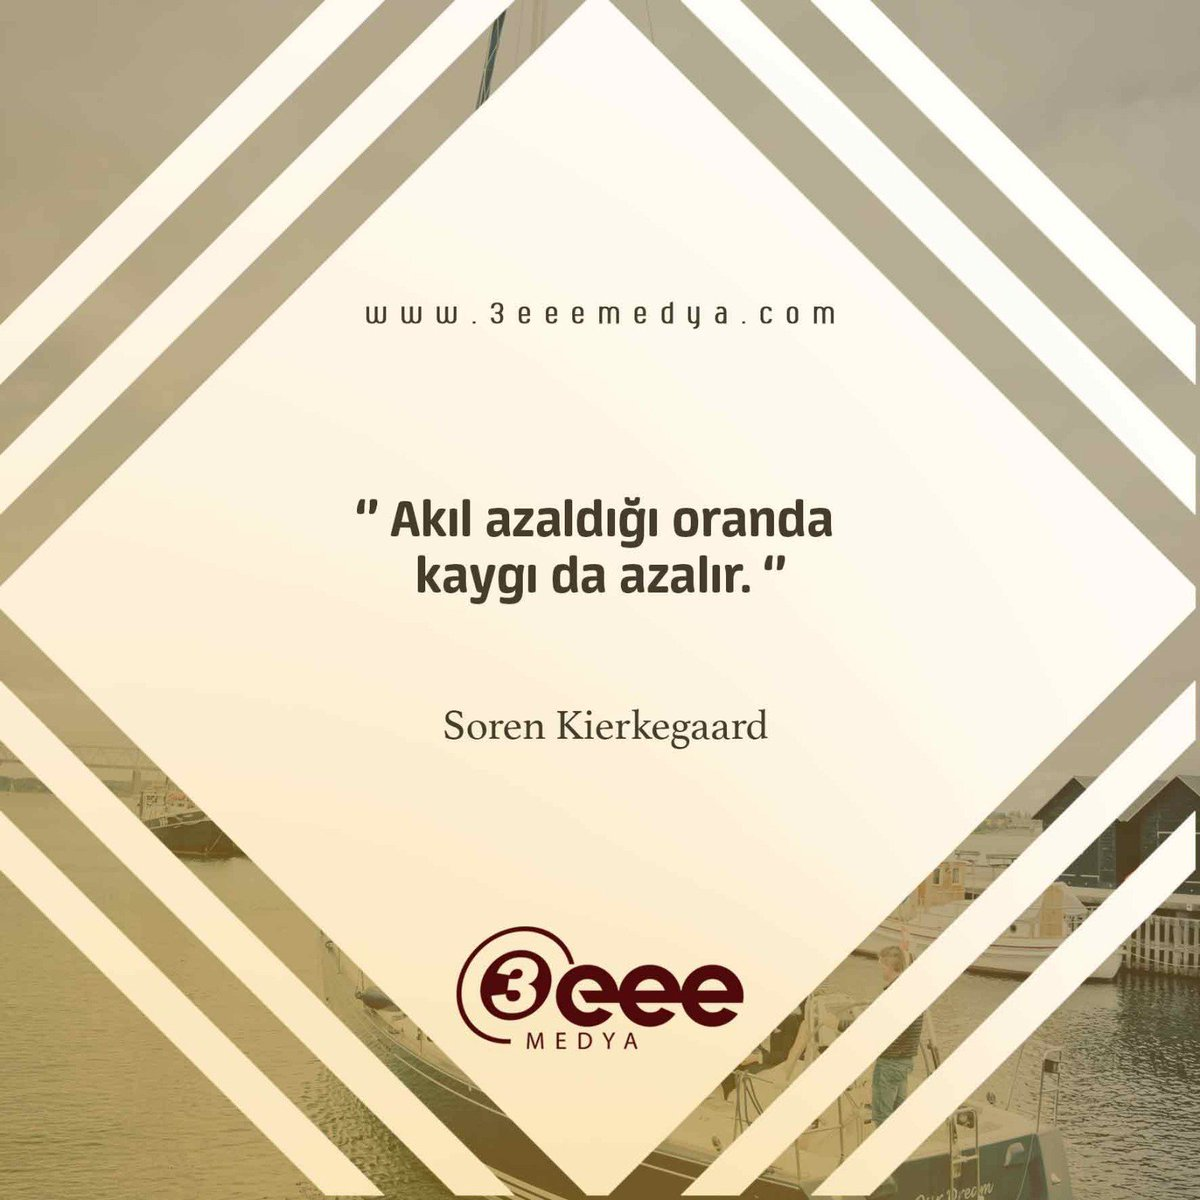 """Akıl azaldığı oranda kaygı da azalır."" -Soren Kierkegaard . . #3eeemedya #insert #reklam #prestij #designer #seyahat #comment #business #marketing #repost #instagood #instafollow #likeforlike #goodmorning #instamood #instadaily #picoftheday"